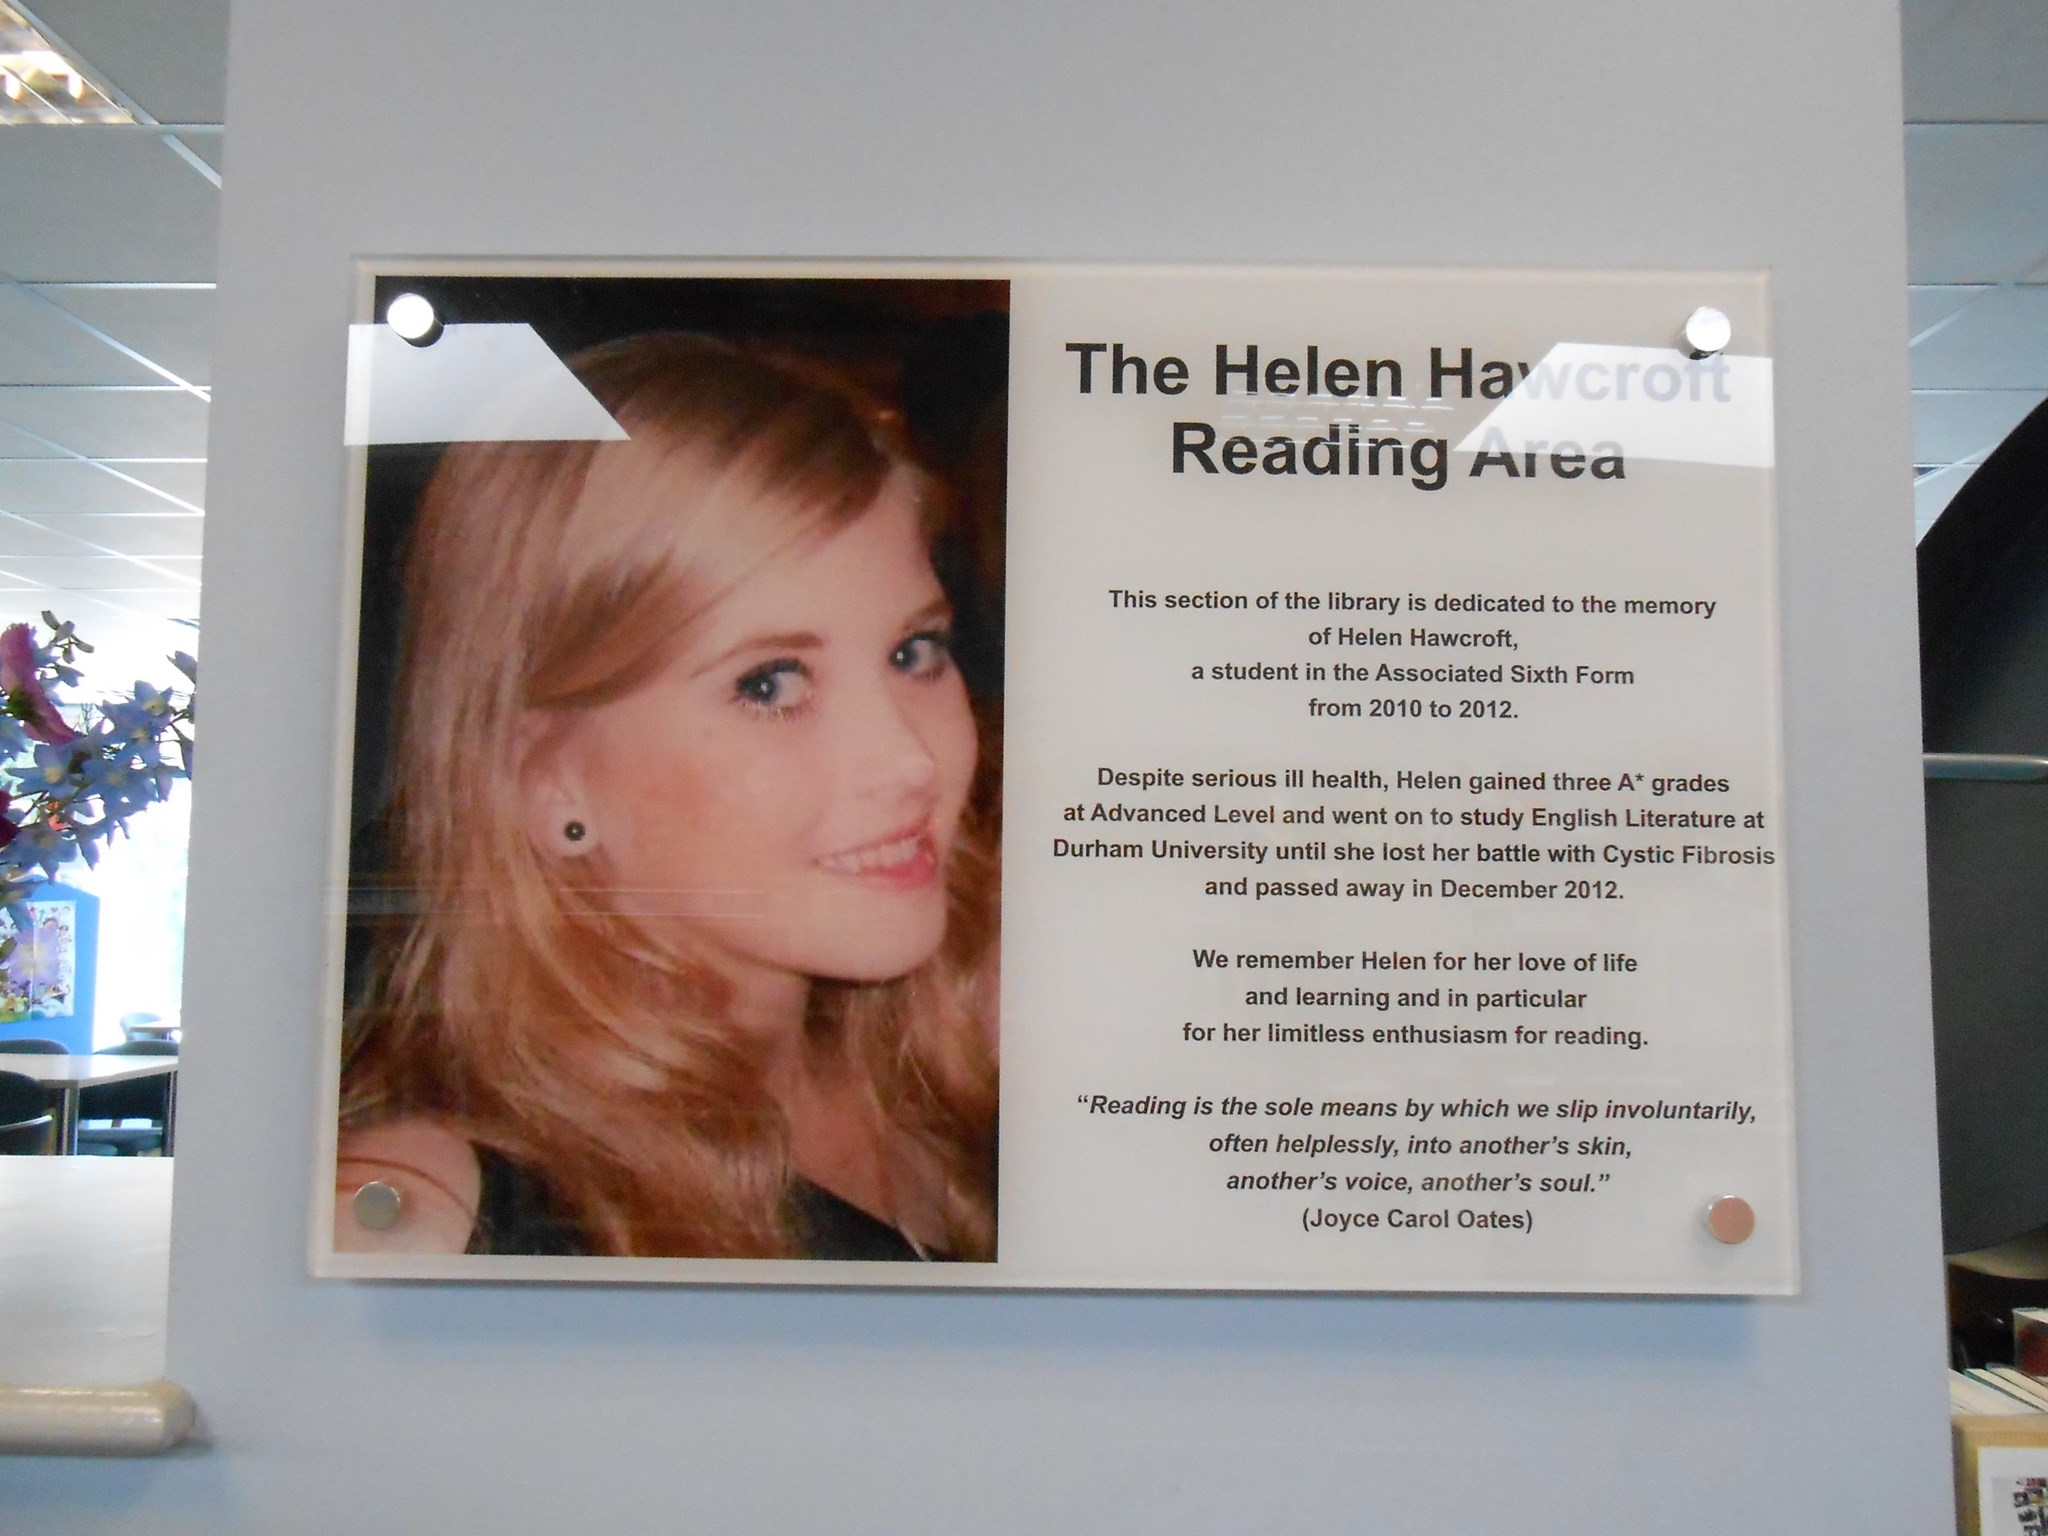 St Aidan's Harrogate memorial to Helen